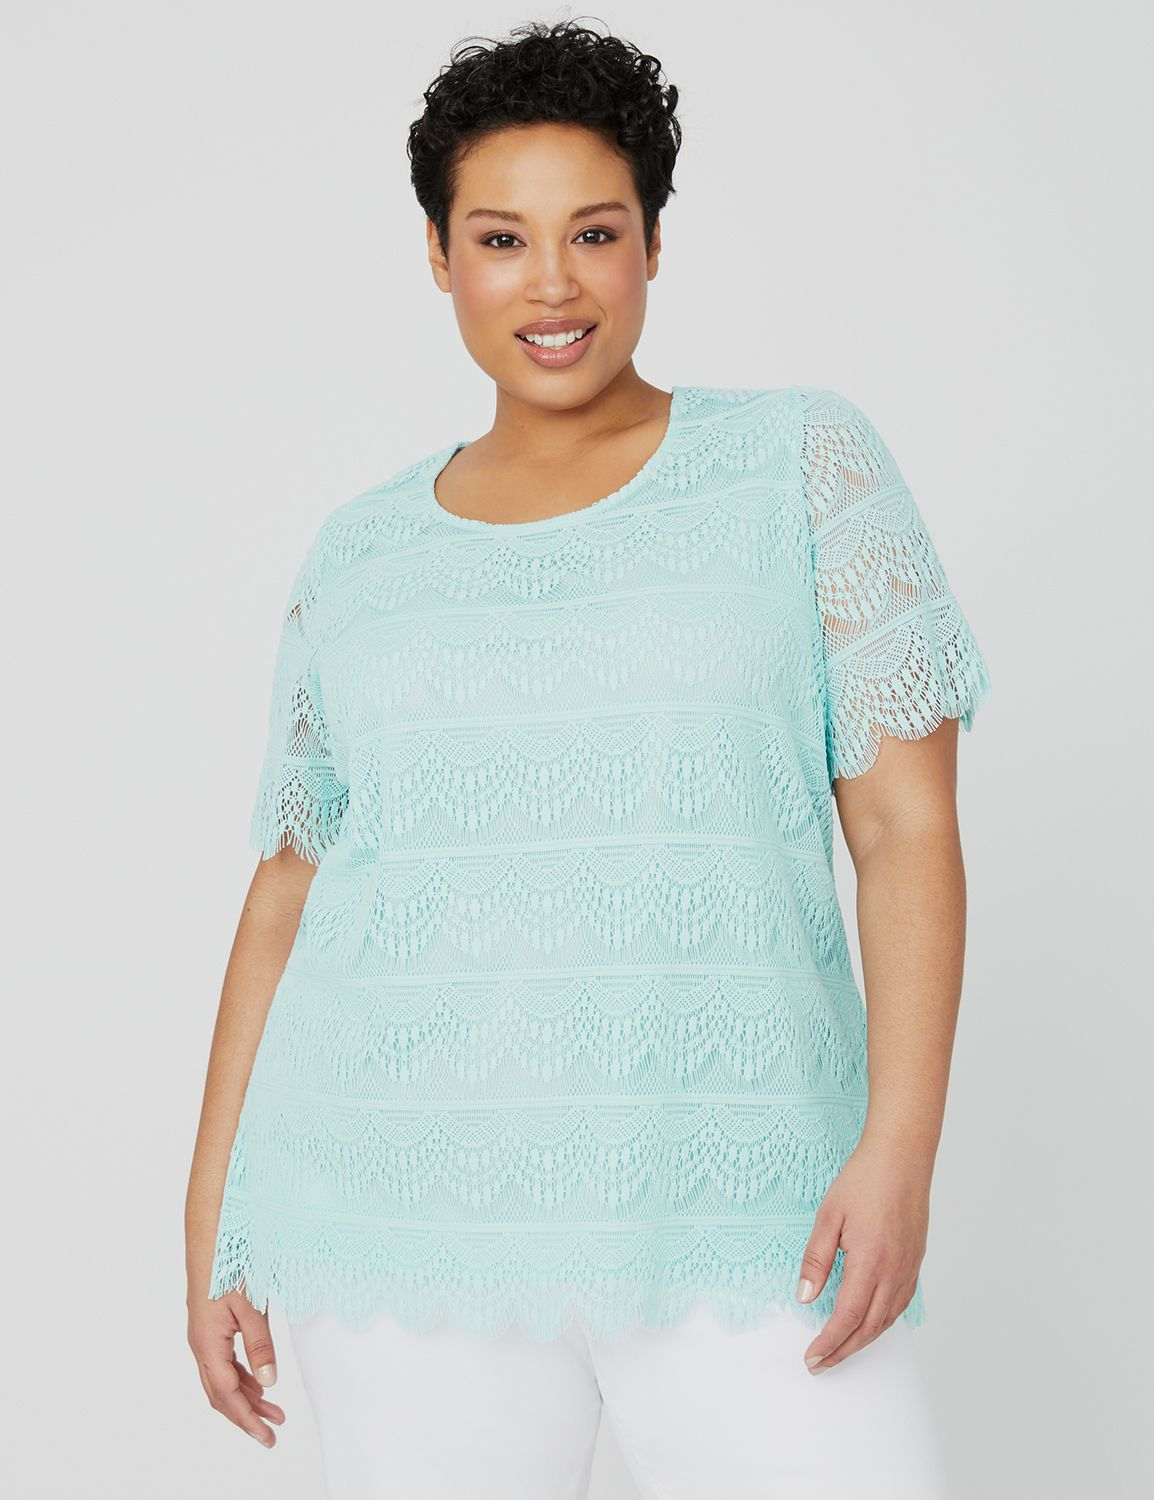 Waves of Lace Top 1087830 SCALLOP EDGE ALLOVER LACE MP-300100100